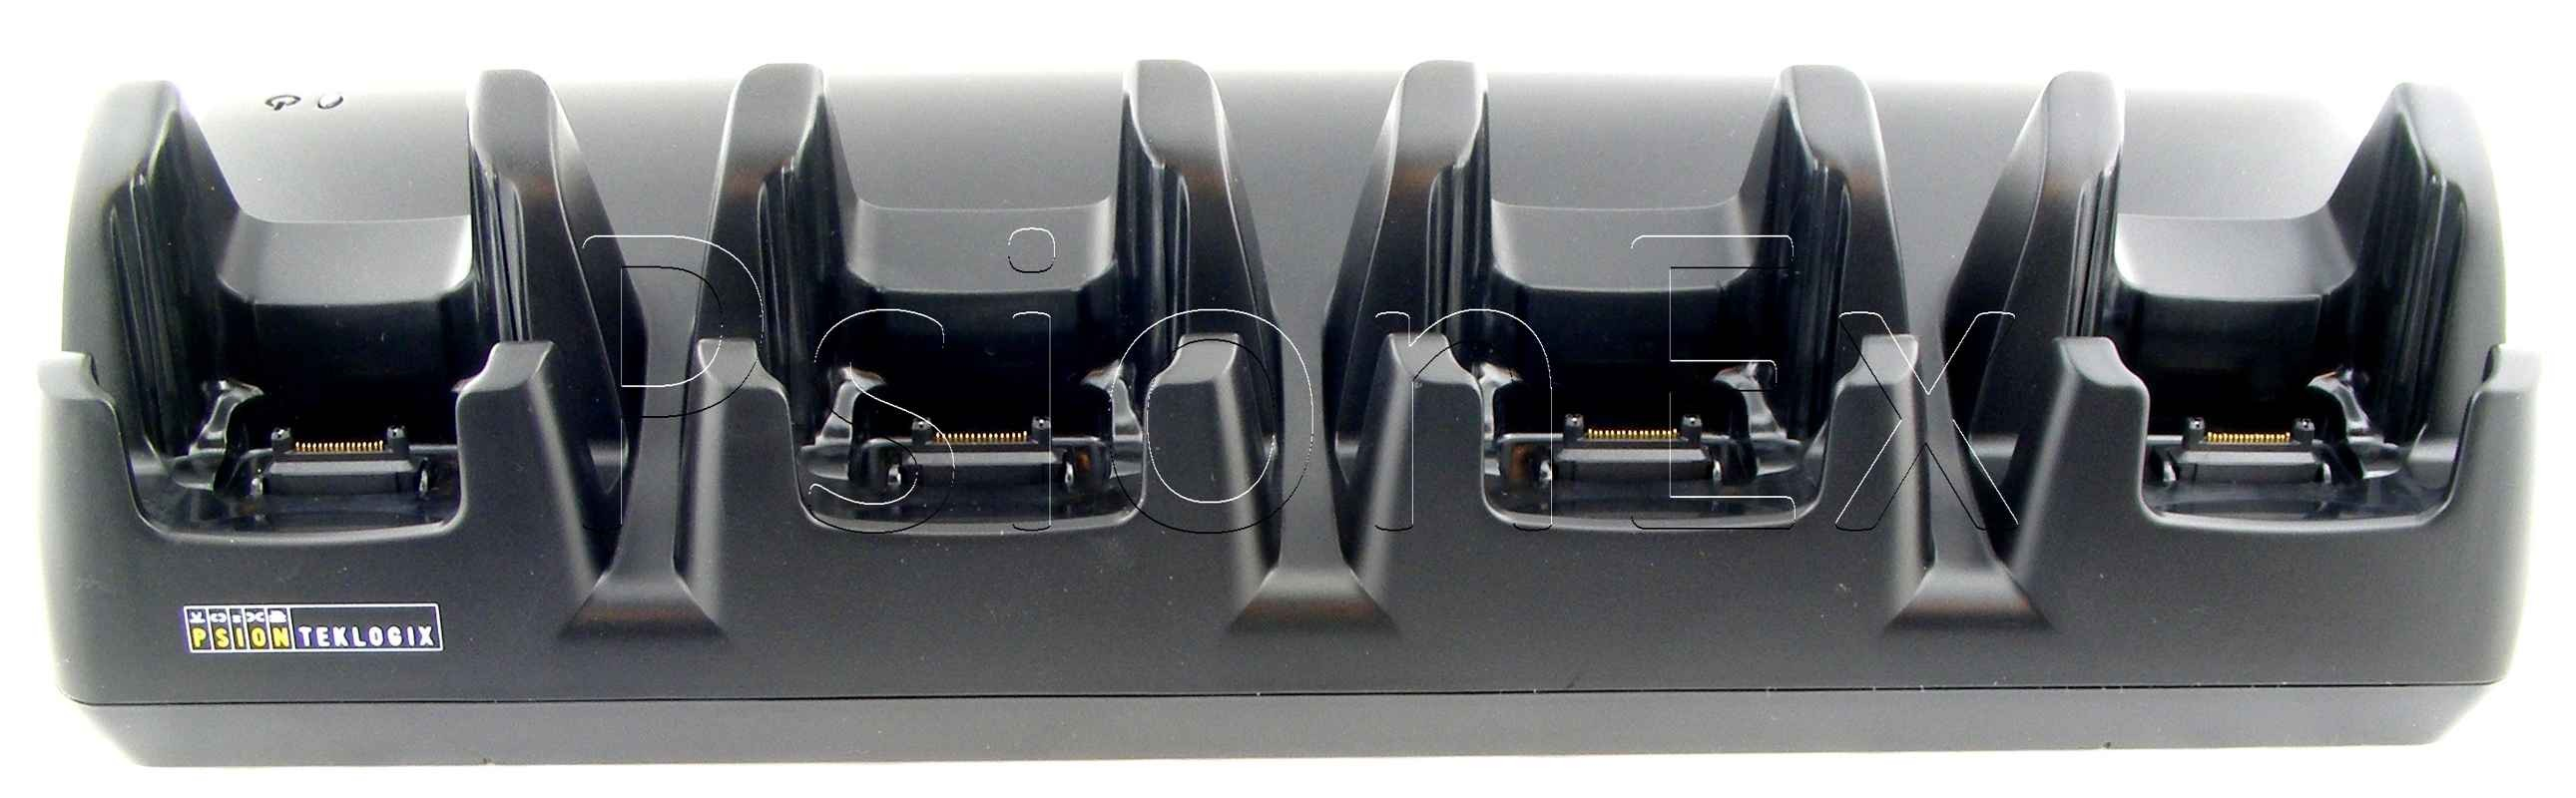 NEO Quad docking station - with power supply and power lead